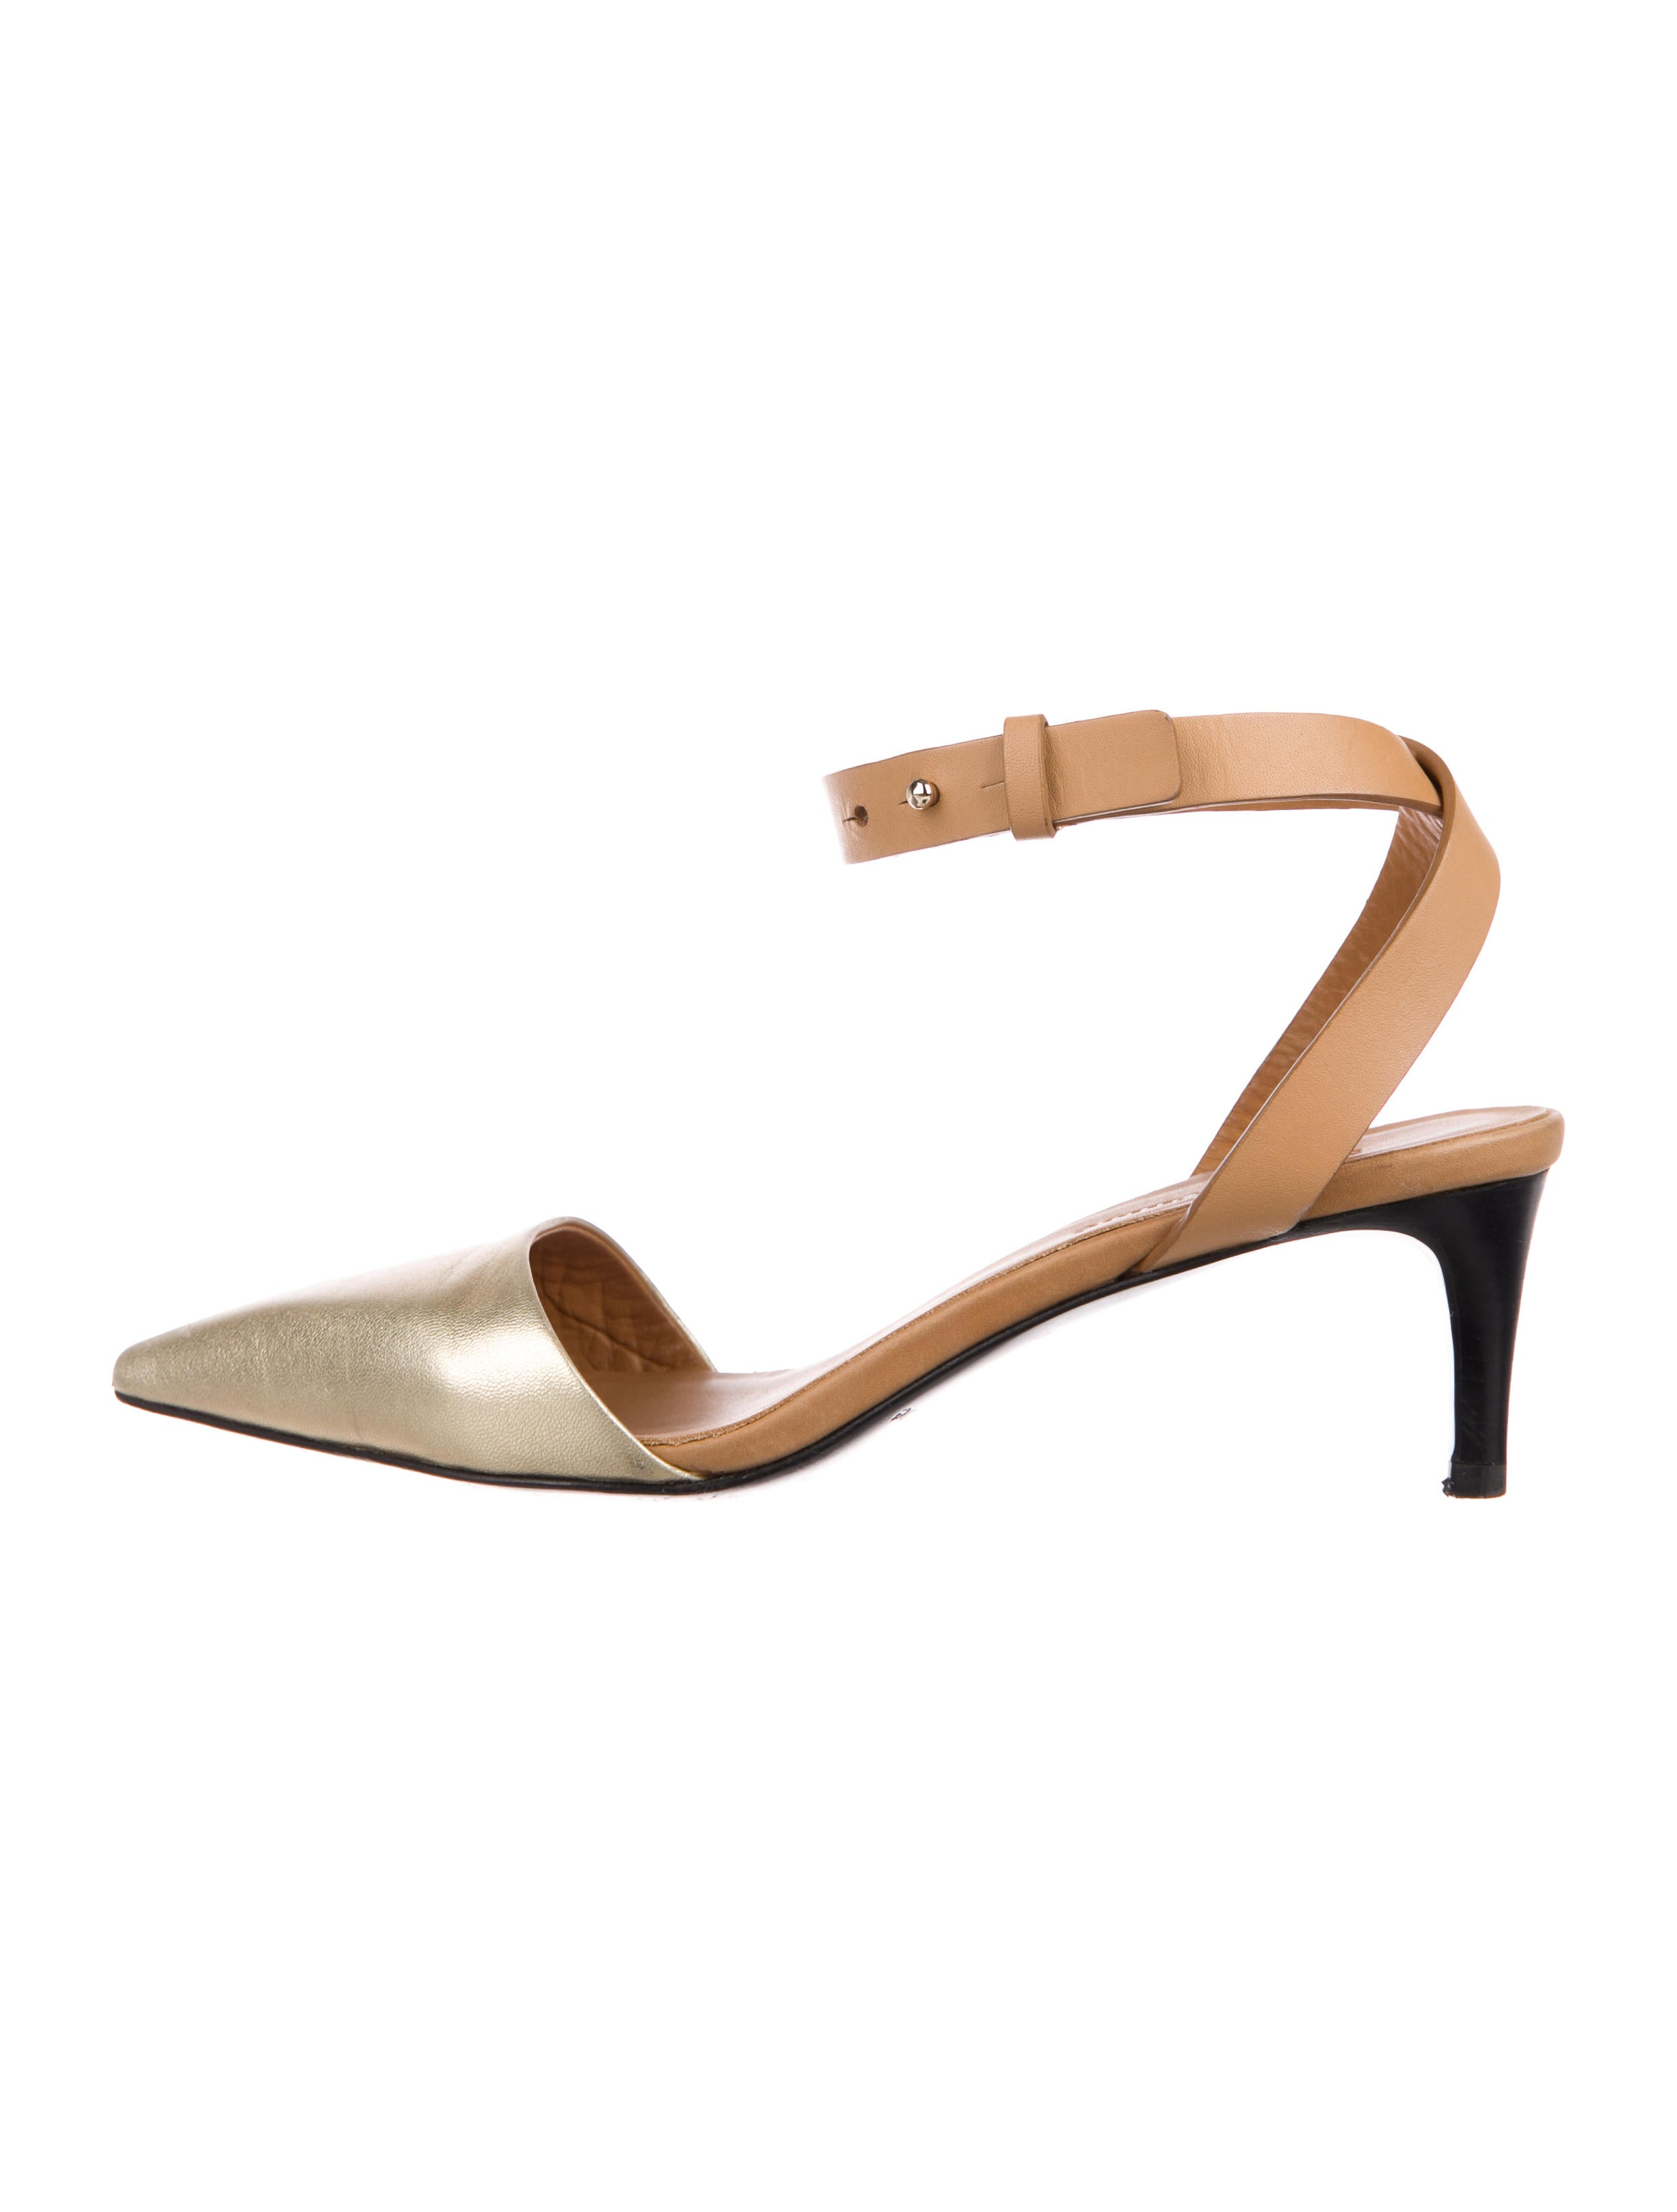 hot sale for sale Chloé Leather Pointed-Toe Pumps with credit card for sale discount eastbay 1zxLlIb